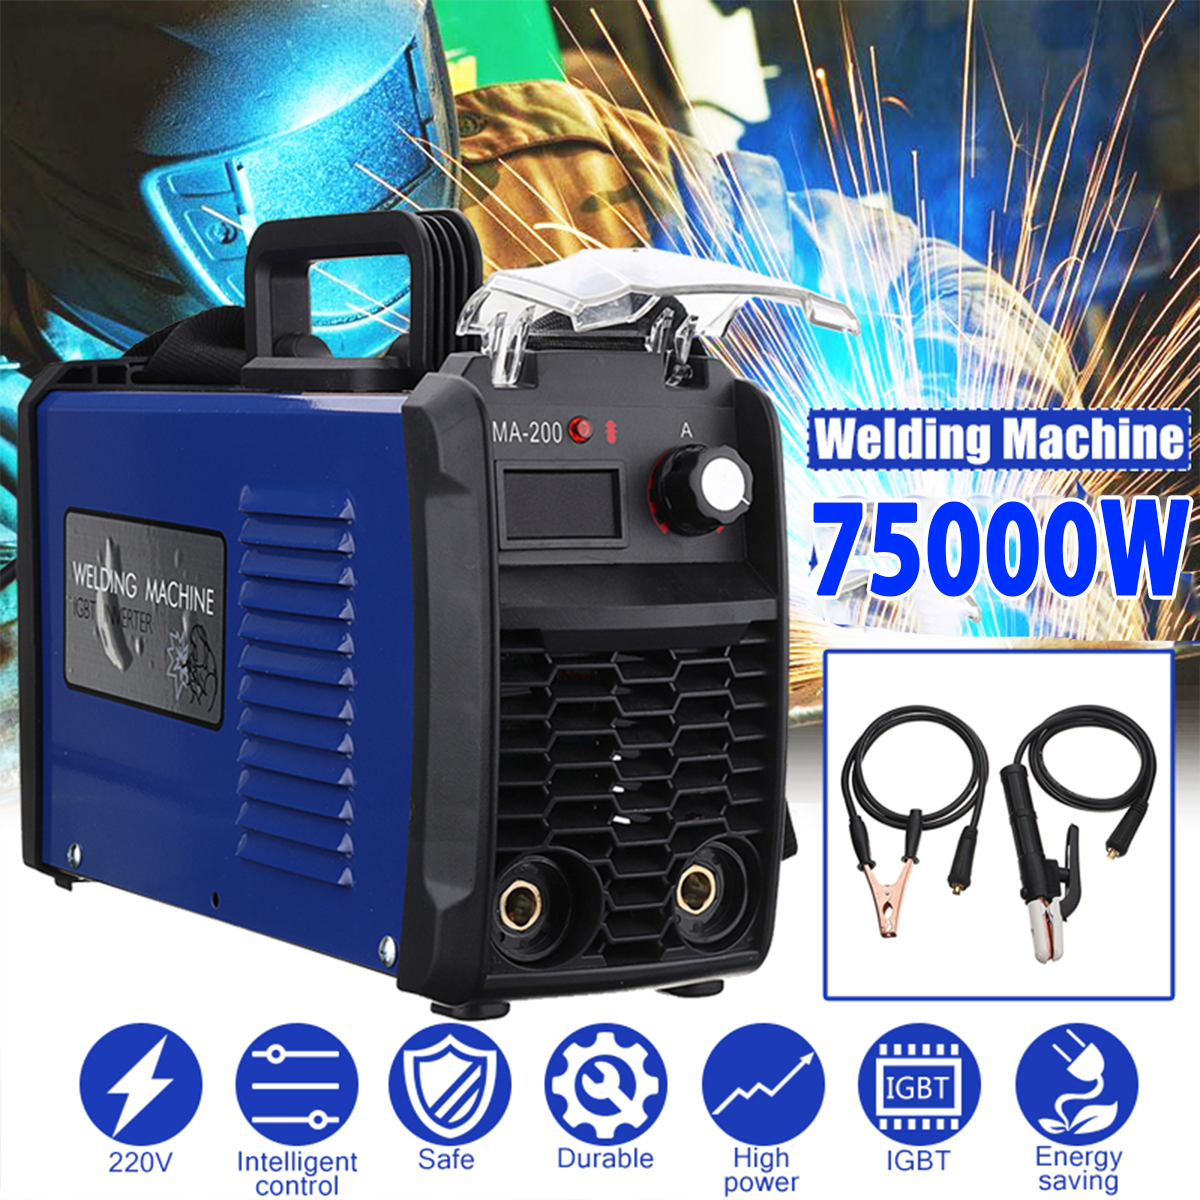 FORGELO 6000W 7500W DC Inverter <font><b>ARC</b></font> Welders IGBT MMA 220V Welding Machine MMA-<font><b>200</b></font>/MMA-250 for Home Beginner Lightweight Efficien image